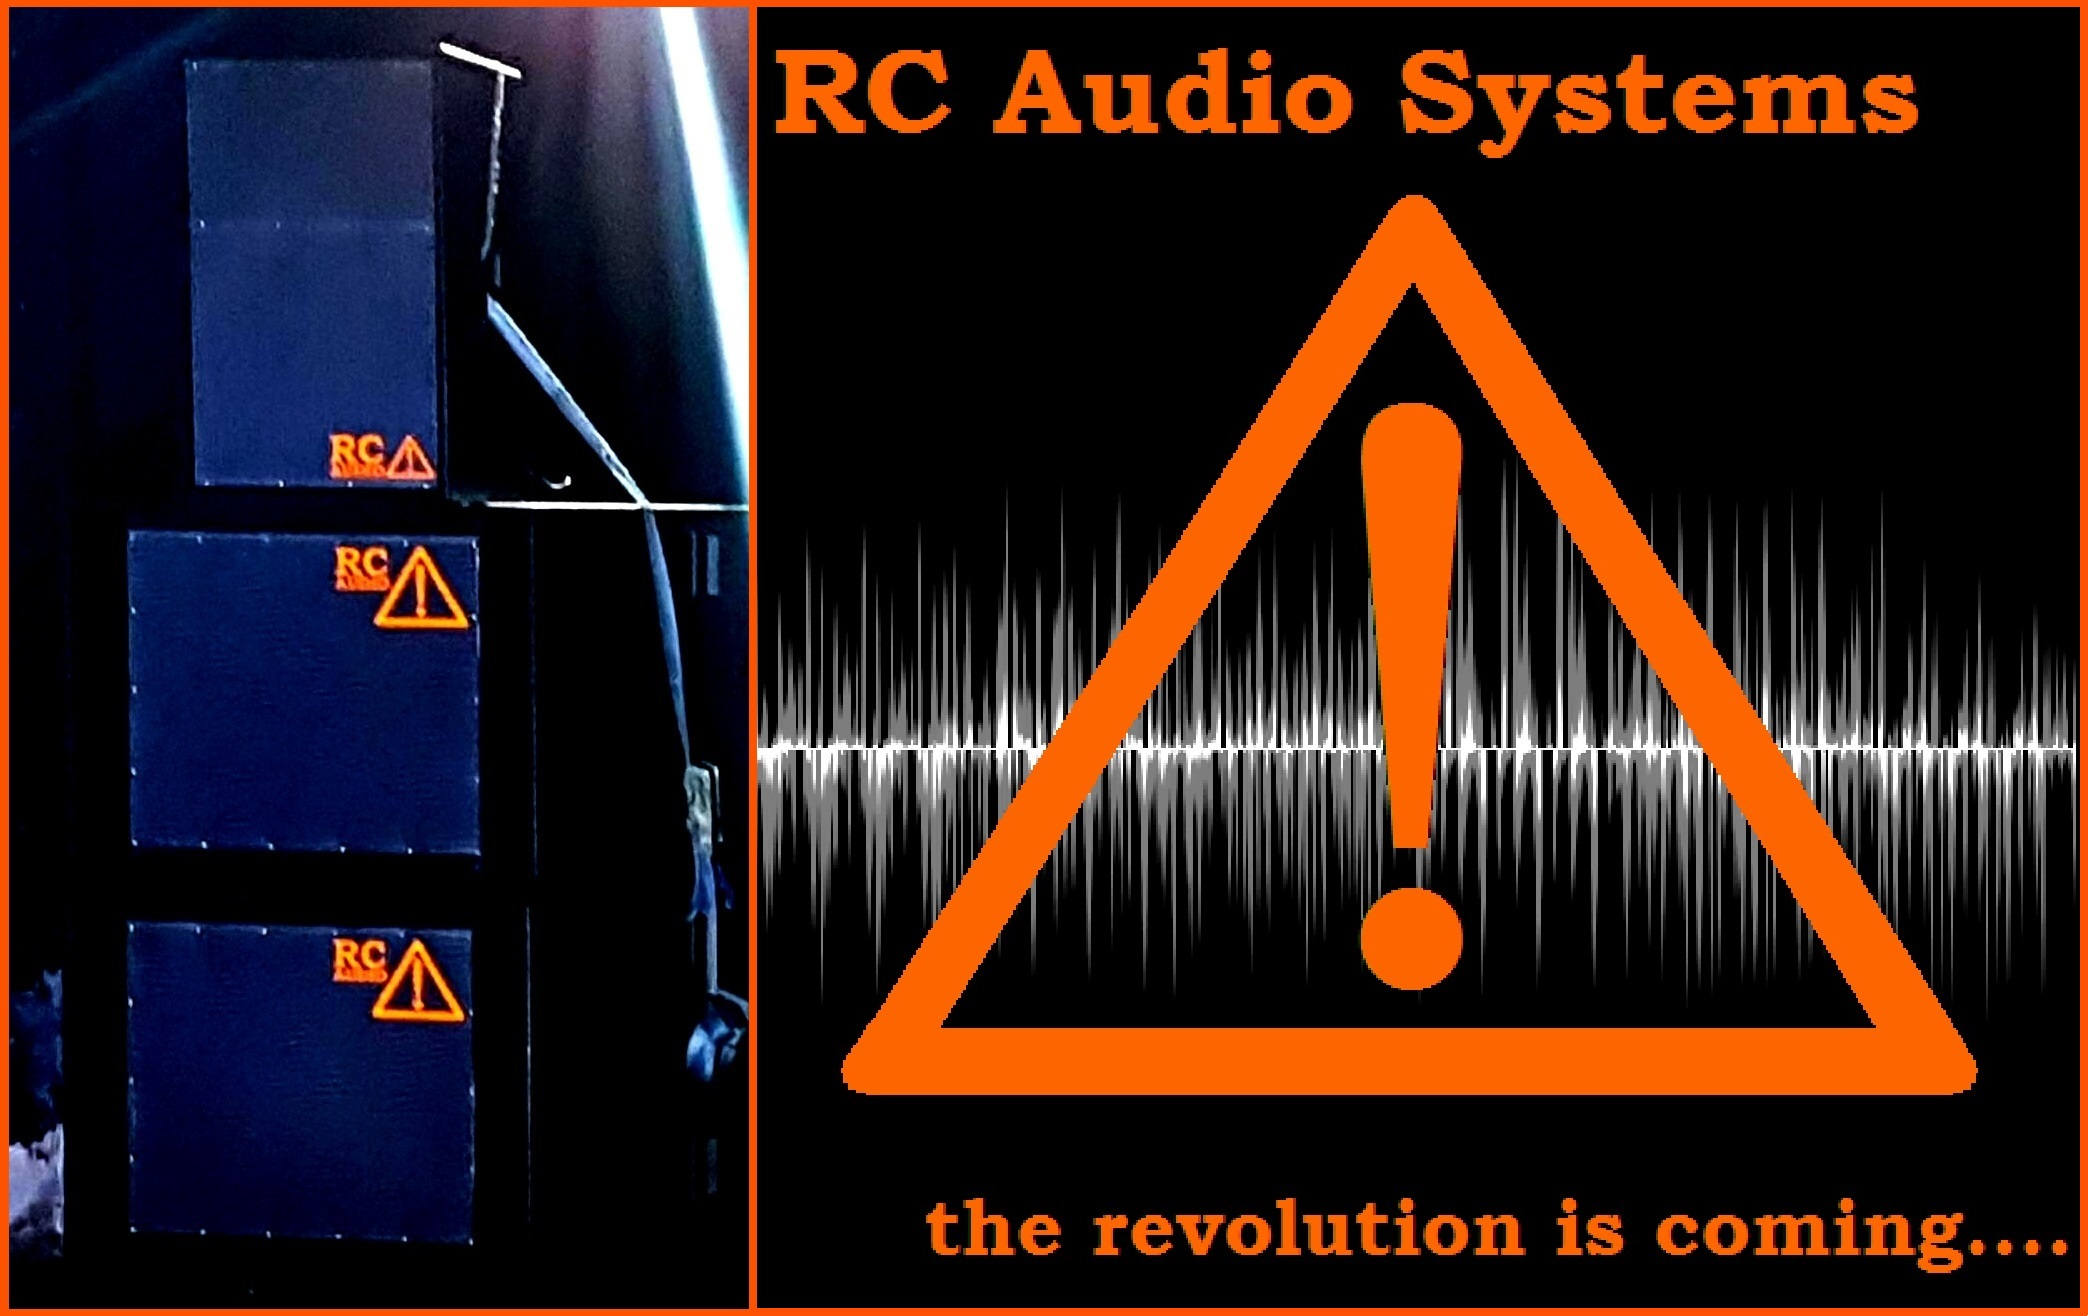 RC Audio Systems